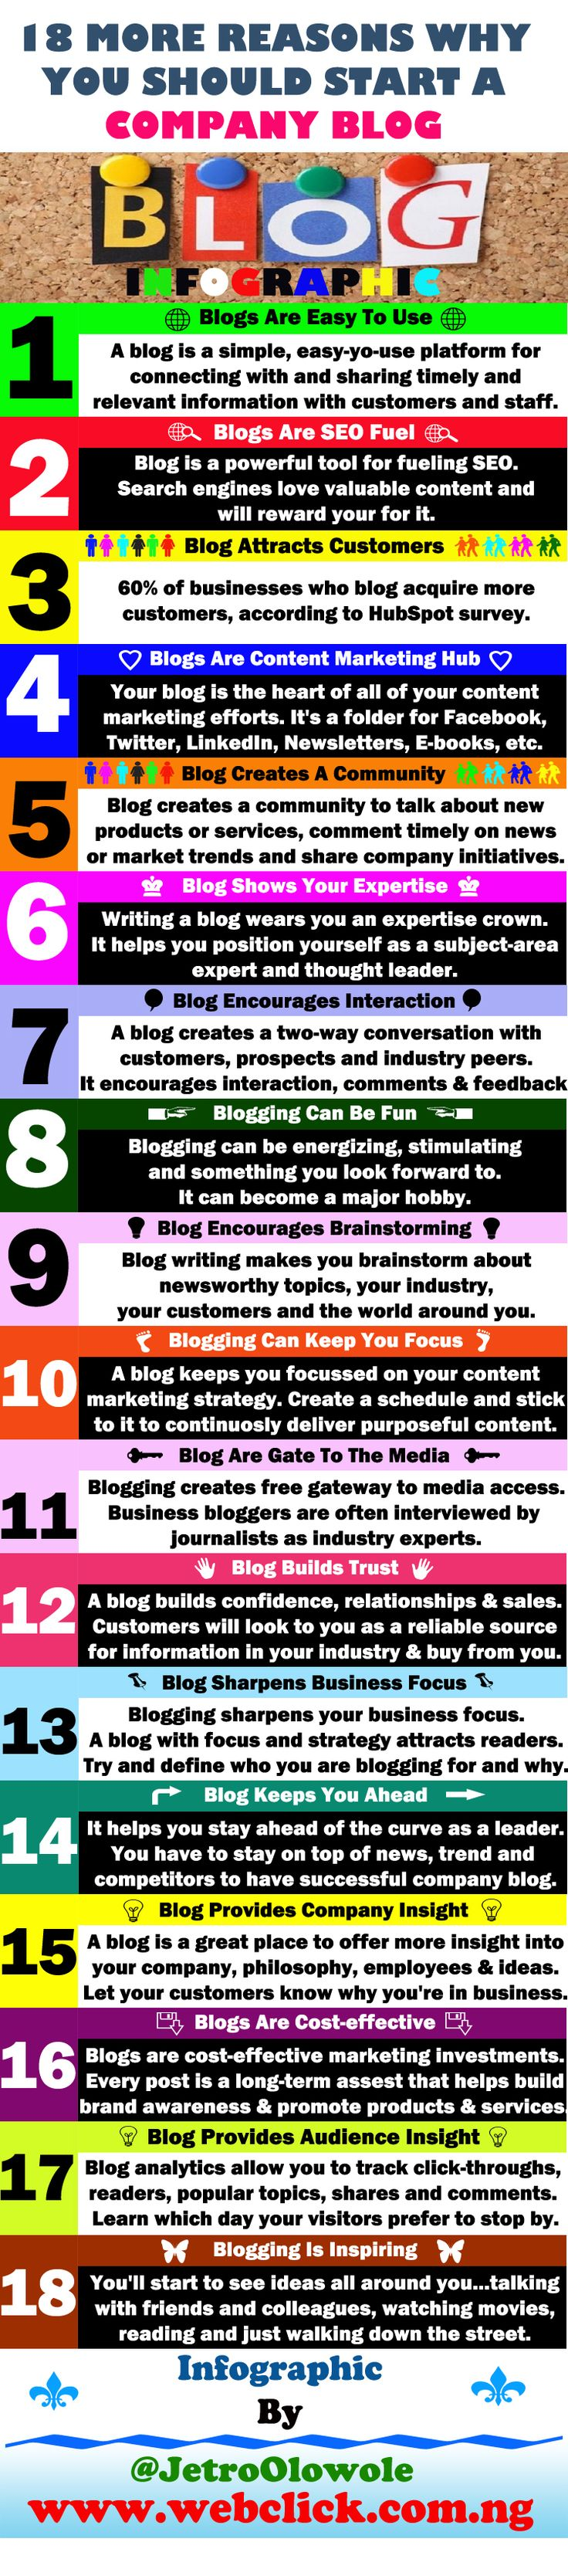 Many believe company blog is dead on arrival as SEO. Here at WebClick, we belief Company Blog are an extremely valuable marketing tool for companies